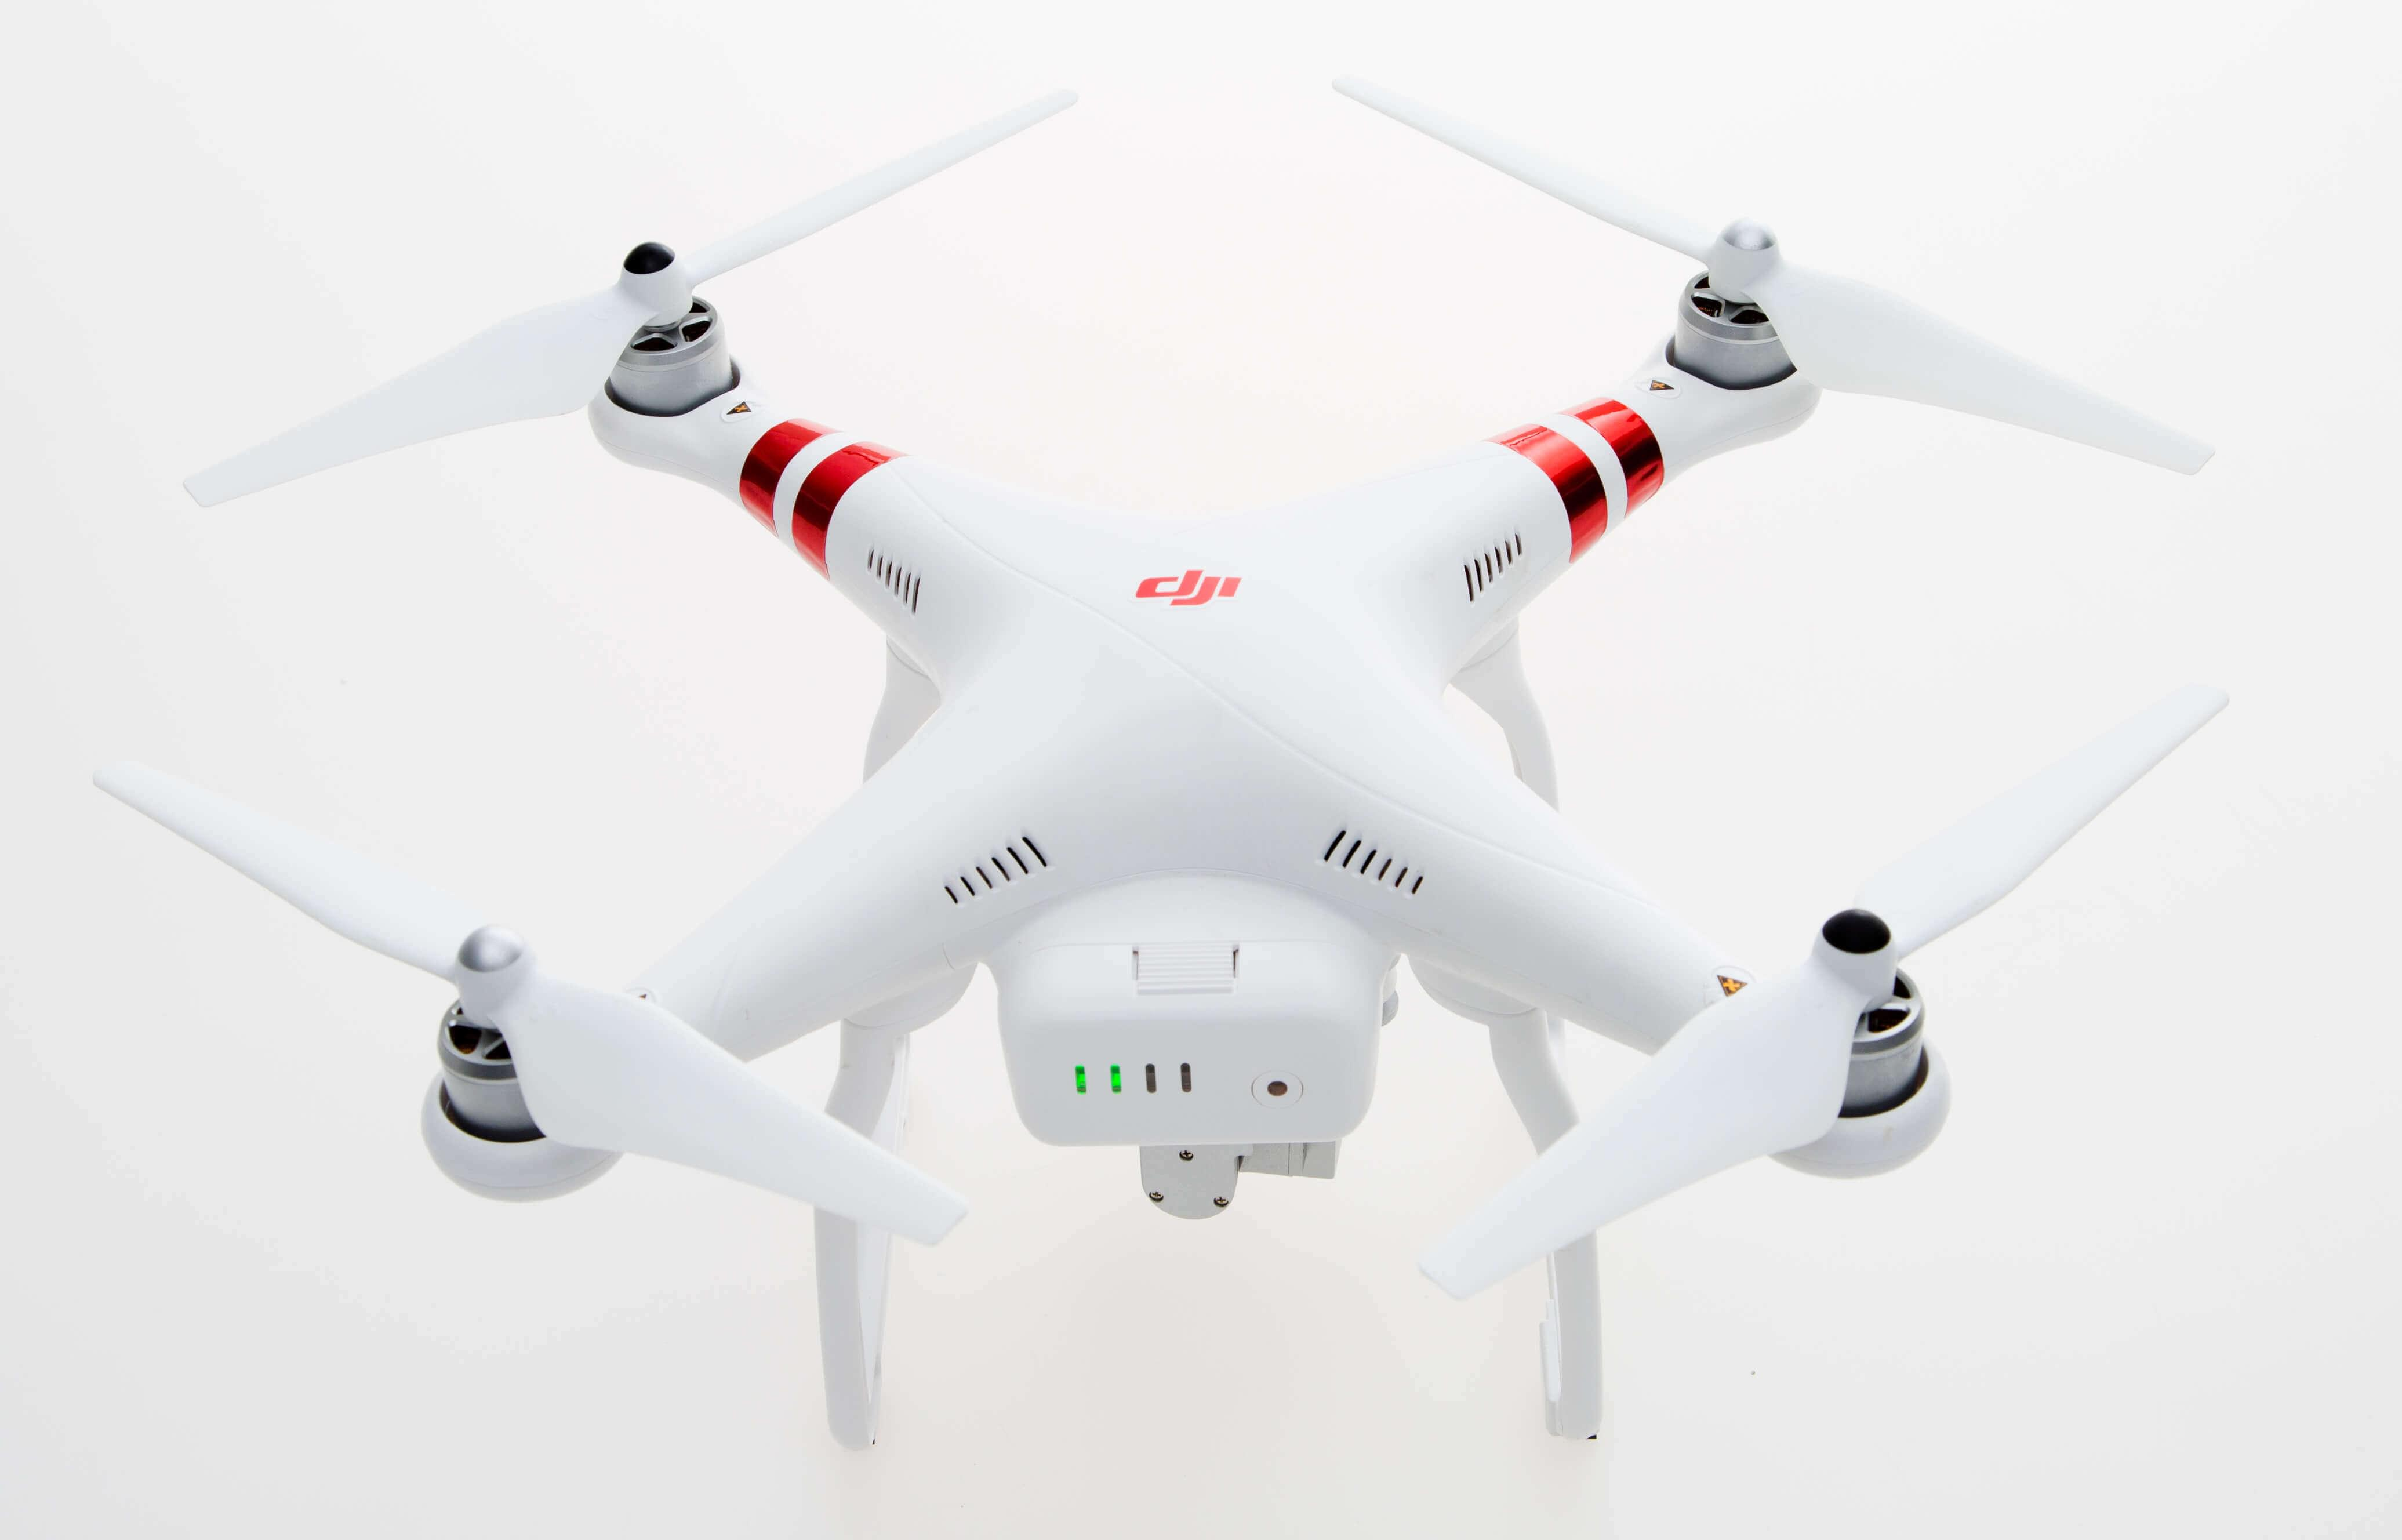 quadcopter camera stabilization with Dji Phantom 3 Standard Quadcopter Drone Hd Camera Dji Refurbished Unit on Dromida Kodo Hd Camera Drone With Remote Controller together with Hubsan H501s X4 Review together with Drone Onyxstar Xena Observer Aerial Surveillance Uav moreover M2 D Mini Gyro Stabilized Eoir Uav Uas Multicopter Drone Flir Thermal Imaging Camera Turret Ball besides Dji Ryze Partner Up To Launch A 99 99 Drone Meet The Tello.